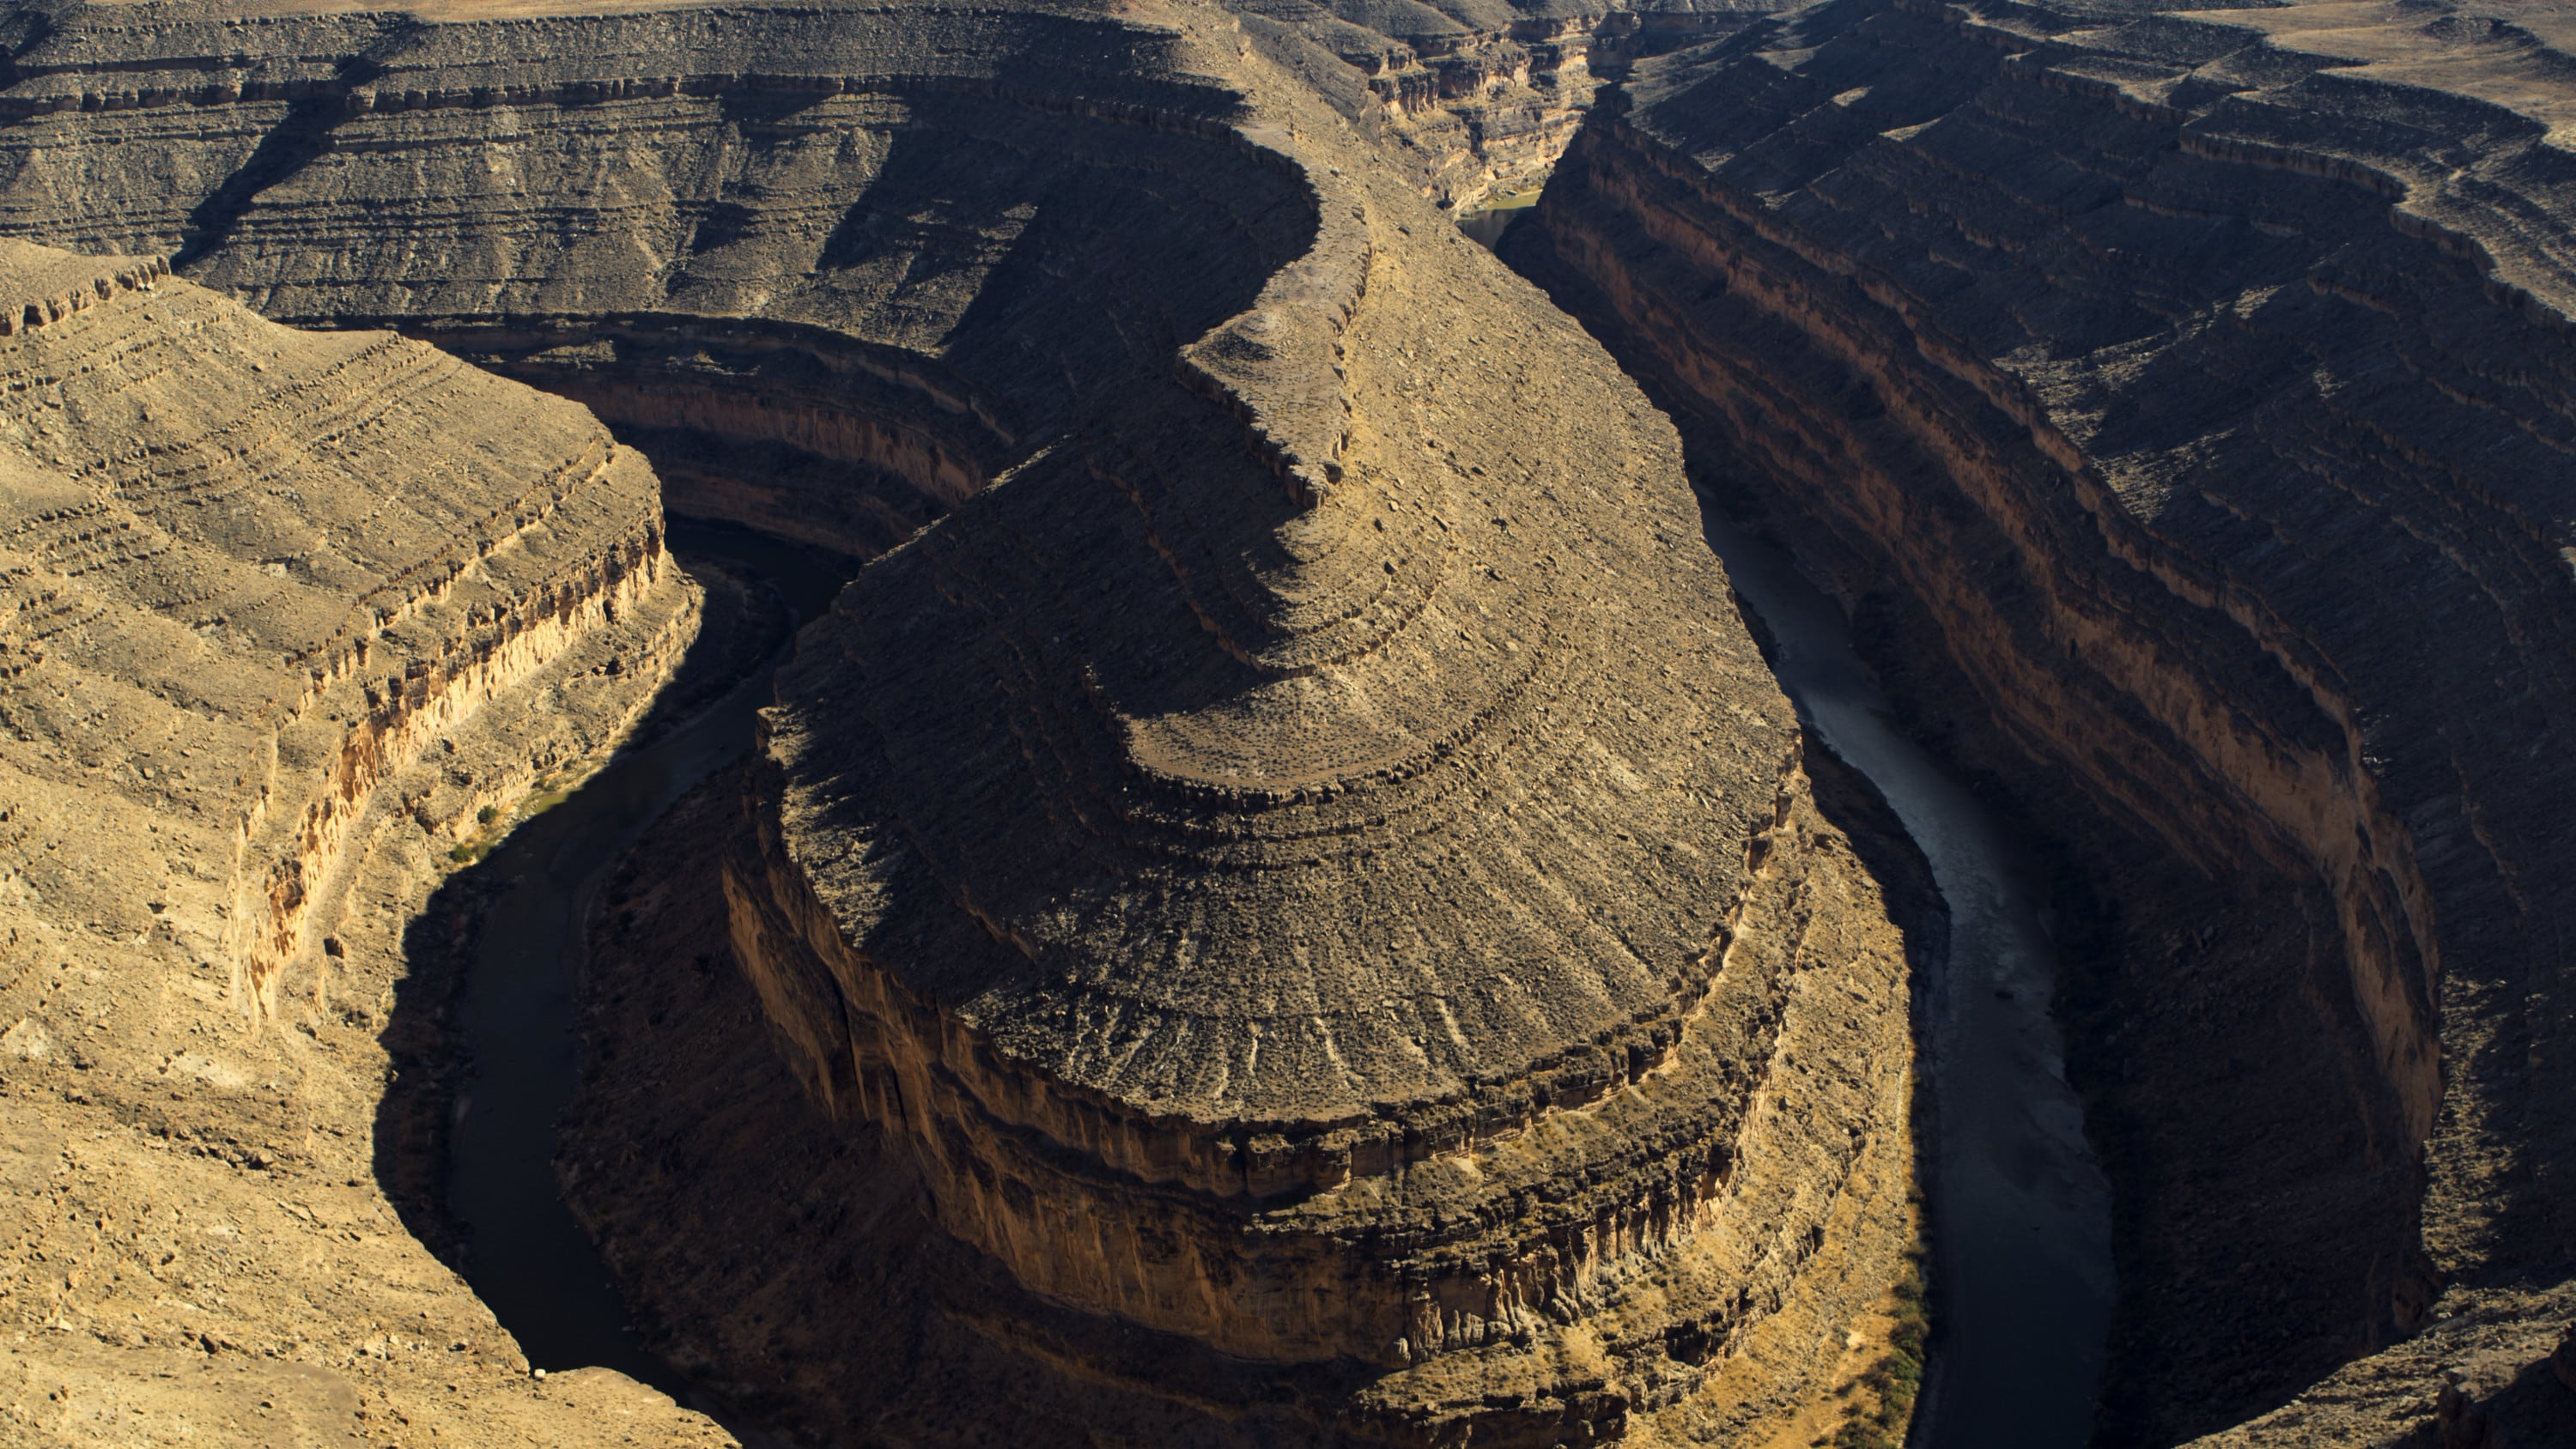 Looking down onto the San Juan River that snakes through Gooseneck State Park. (National Geographic for Disney+)